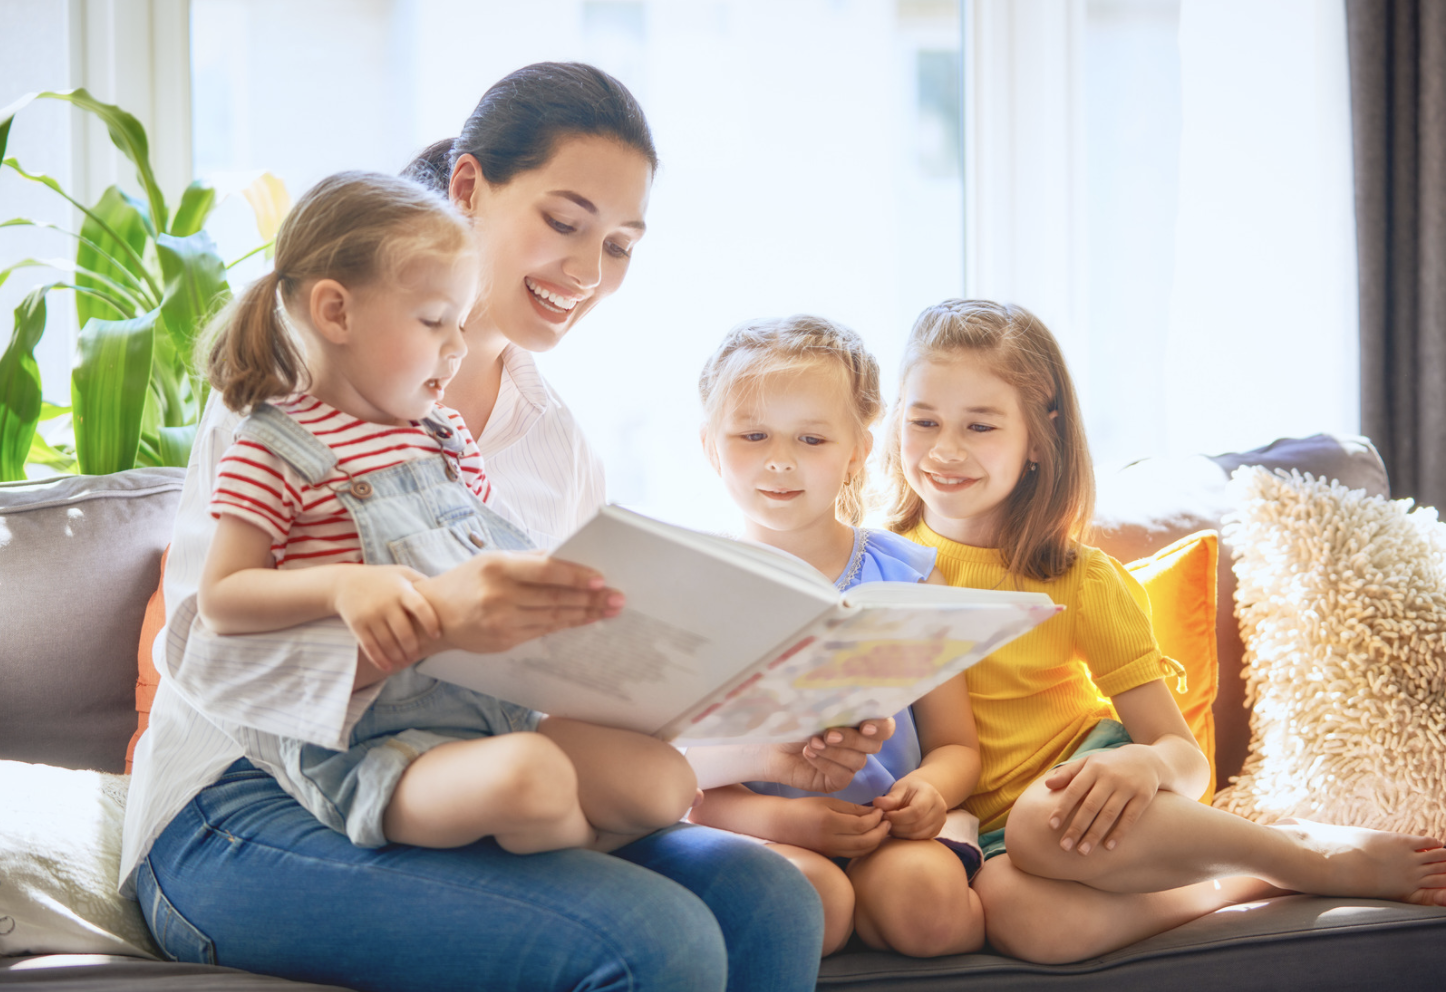 Read with your kids if you're stuck at home while on the COVID-19 crisis